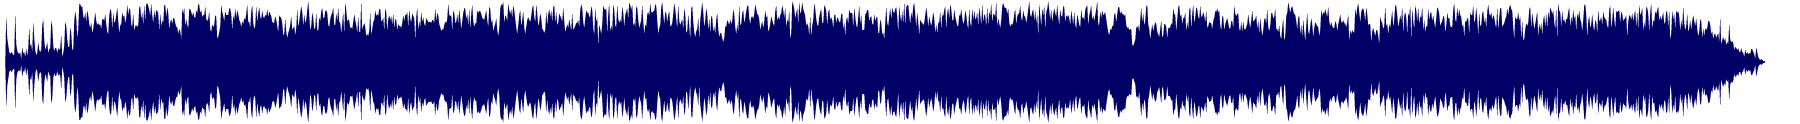 waveform of track #70993